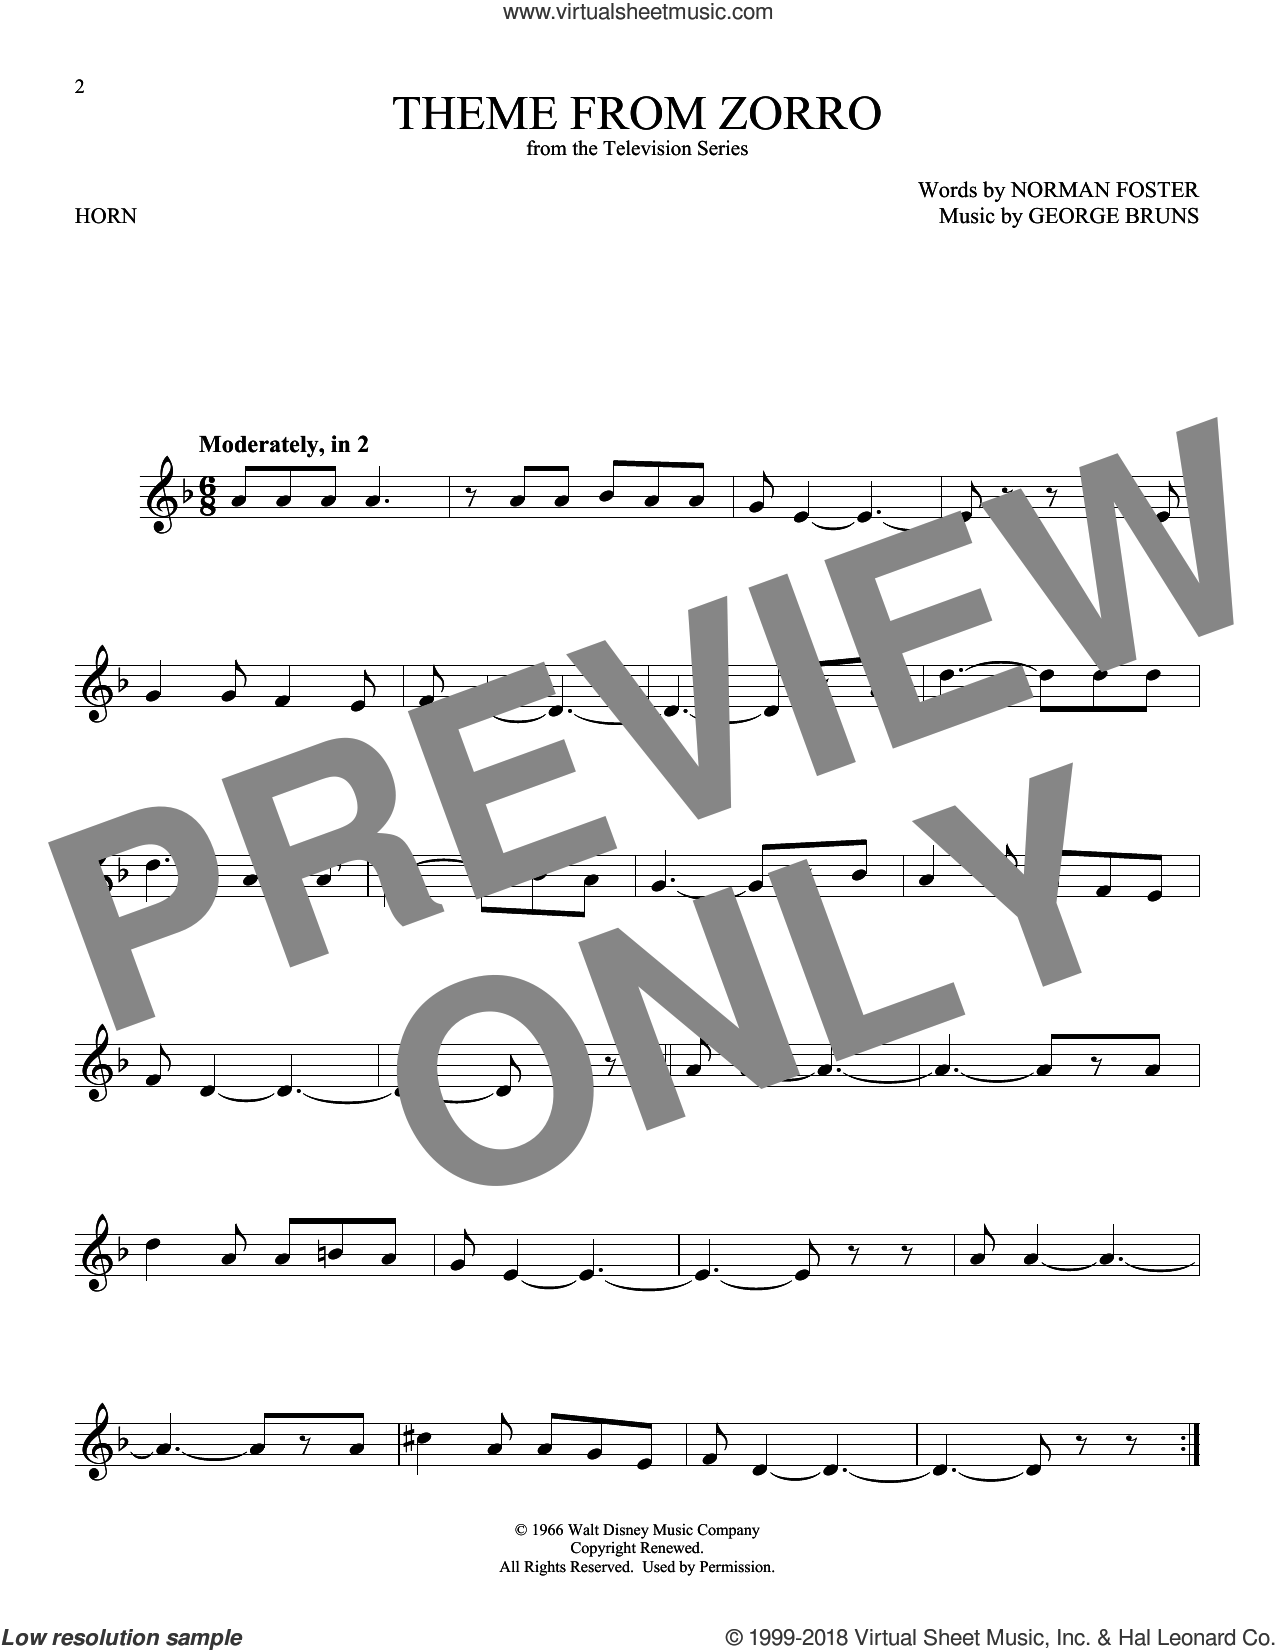 Theme From Zorro sheet music for horn solo by George Bruns and Norman Foster, intermediate skill level